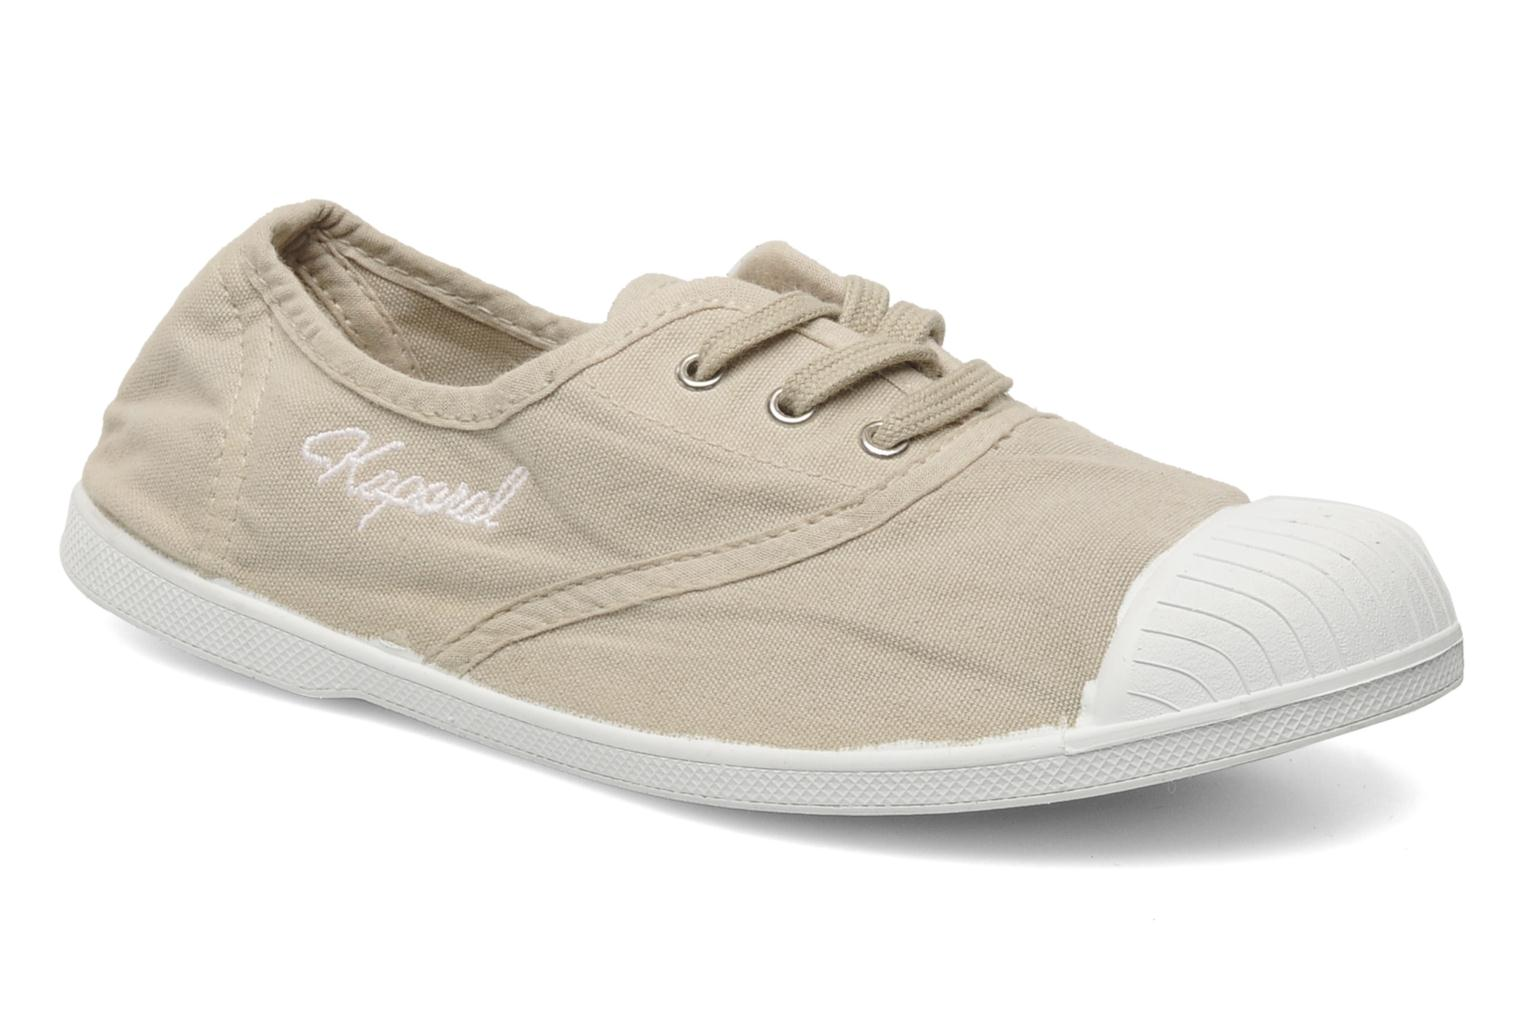 Sneakers VICKANO by Kaporal